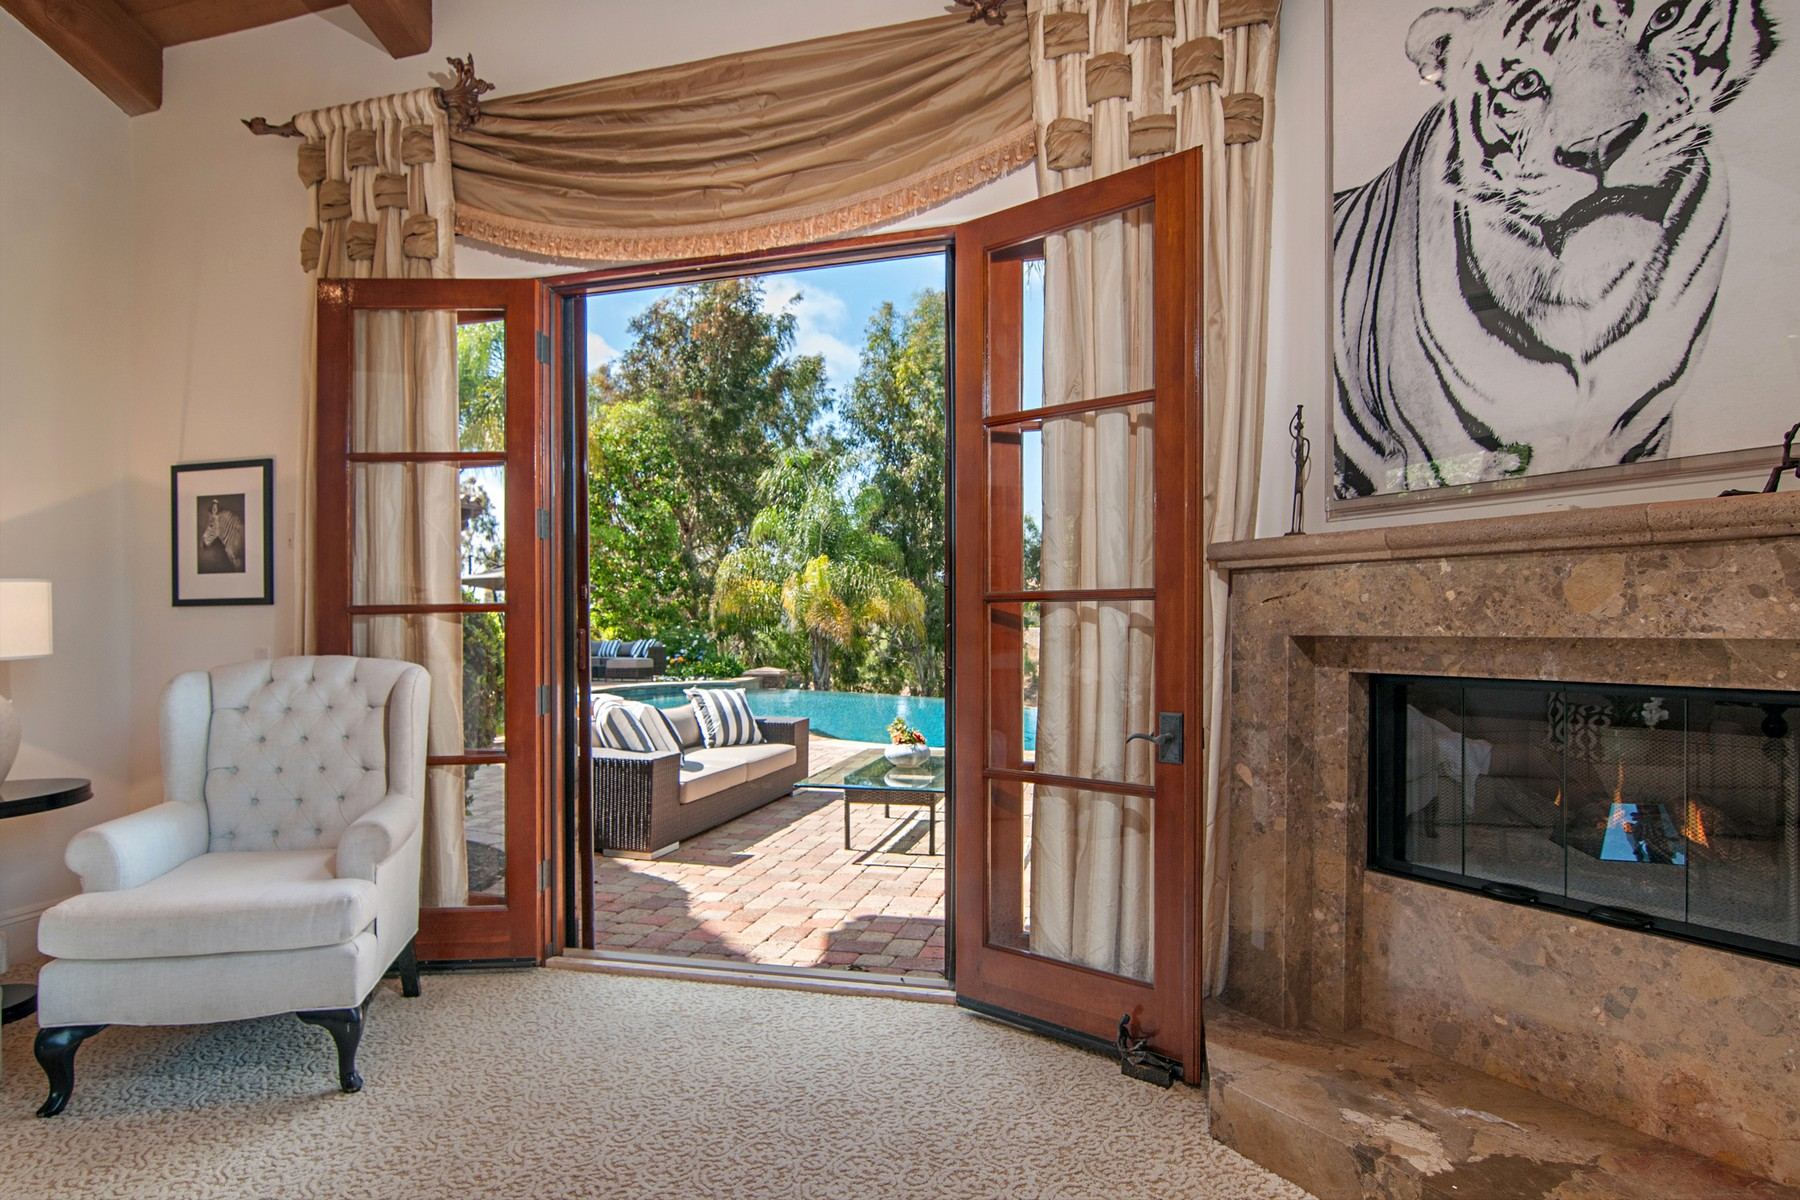 Additional photo for property listing at 7758 - 7760 Road To Zanzibar  Rancho Santa Fe, California 92127 Estados Unidos